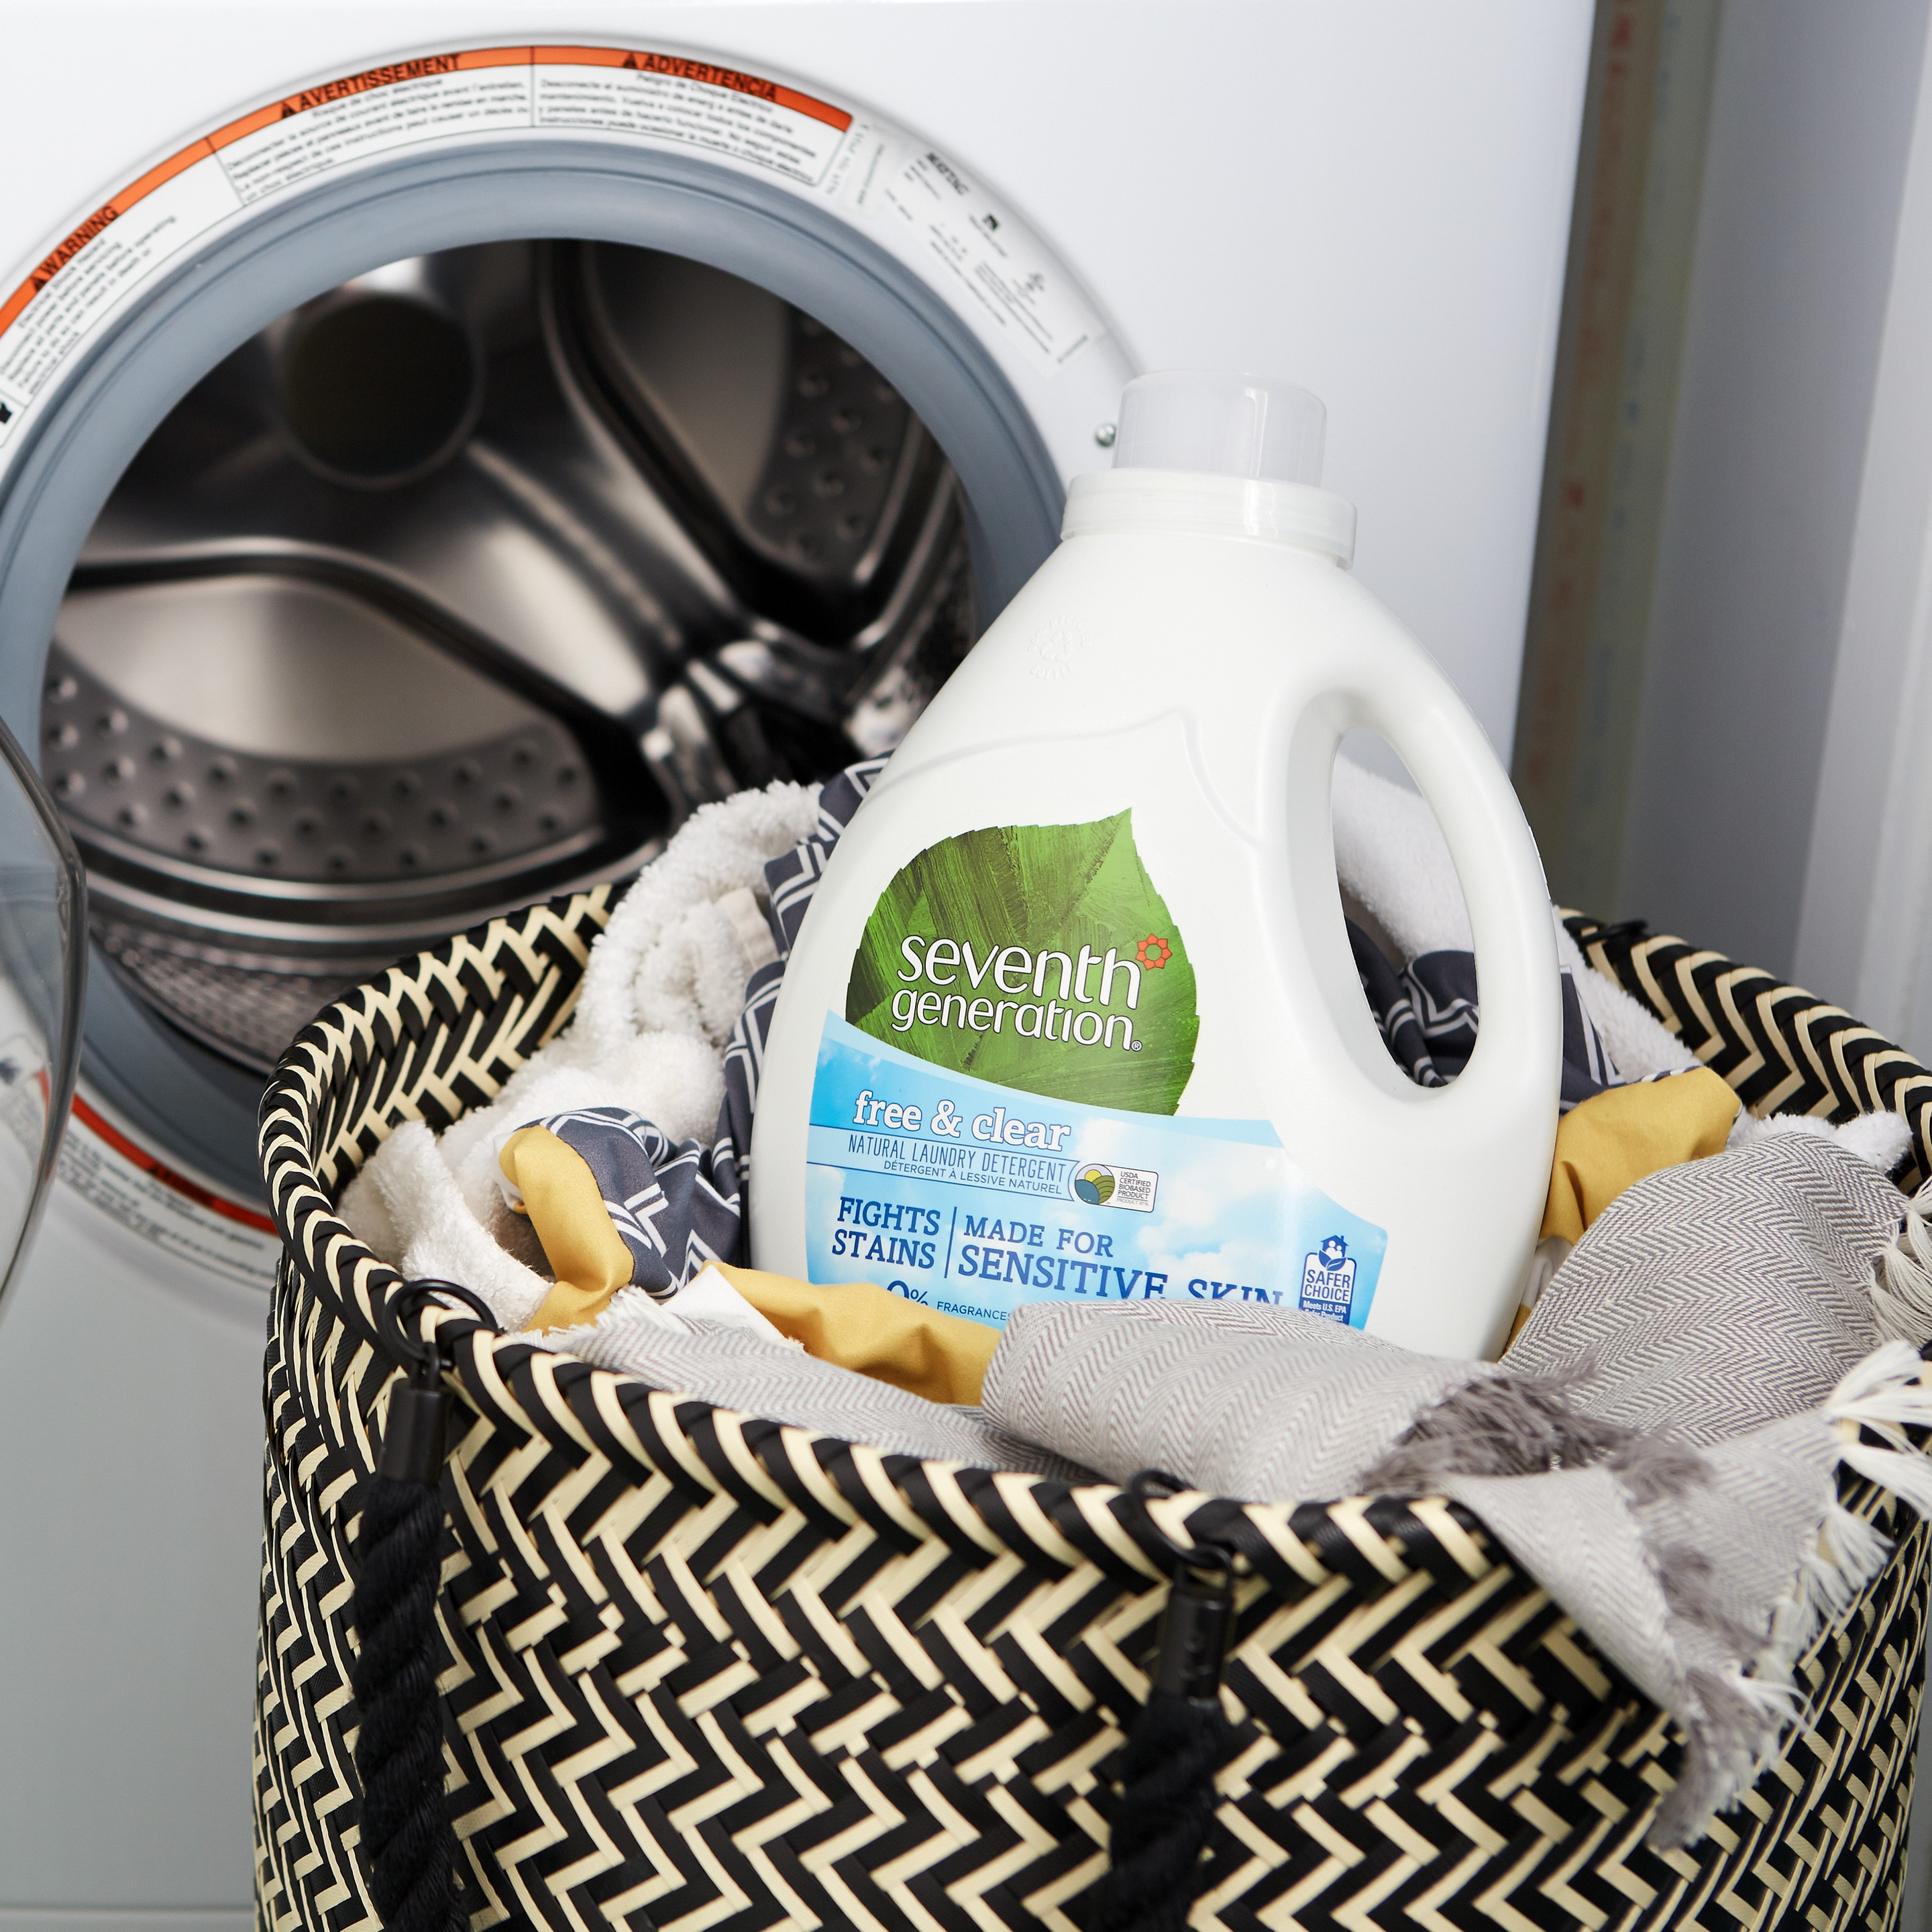 Assorted F&C Seventh Generation products in laundry basket